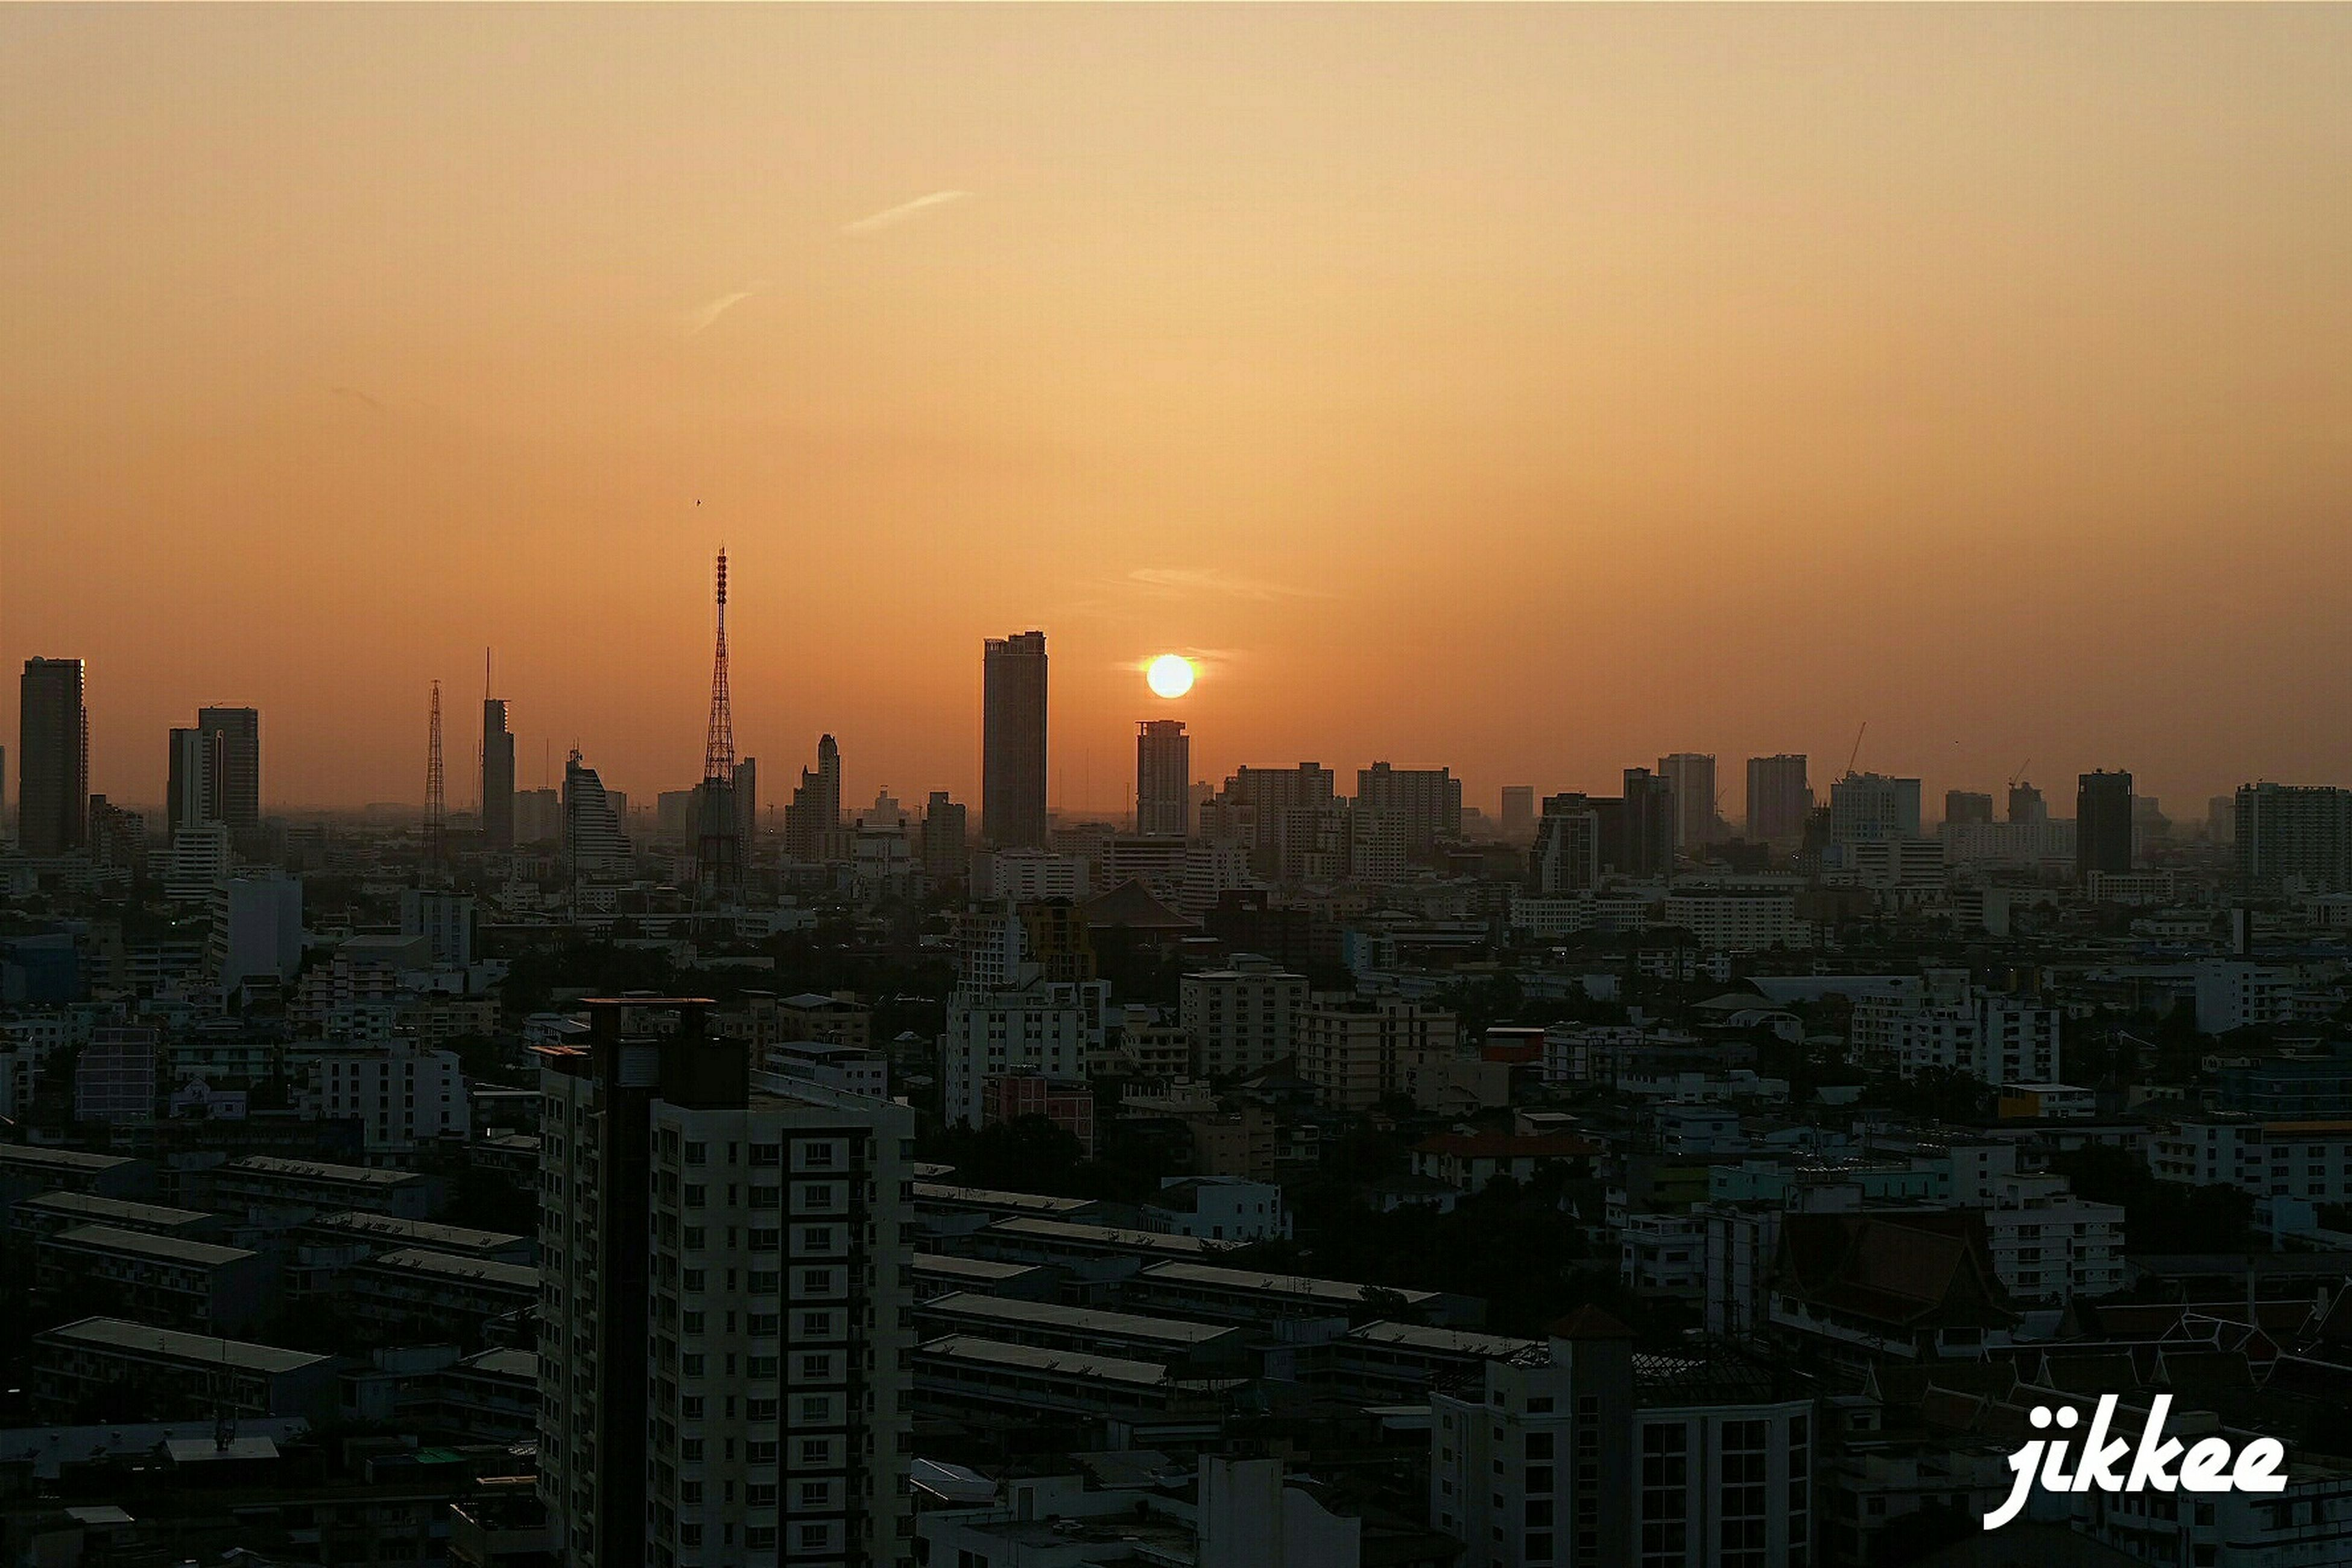 city, cityscape, building exterior, sunset, architecture, built structure, skyscraper, crowded, tower, tall - high, orange color, high angle view, sky, urban skyline, residential district, city life, office building, residential building, modern, illuminated